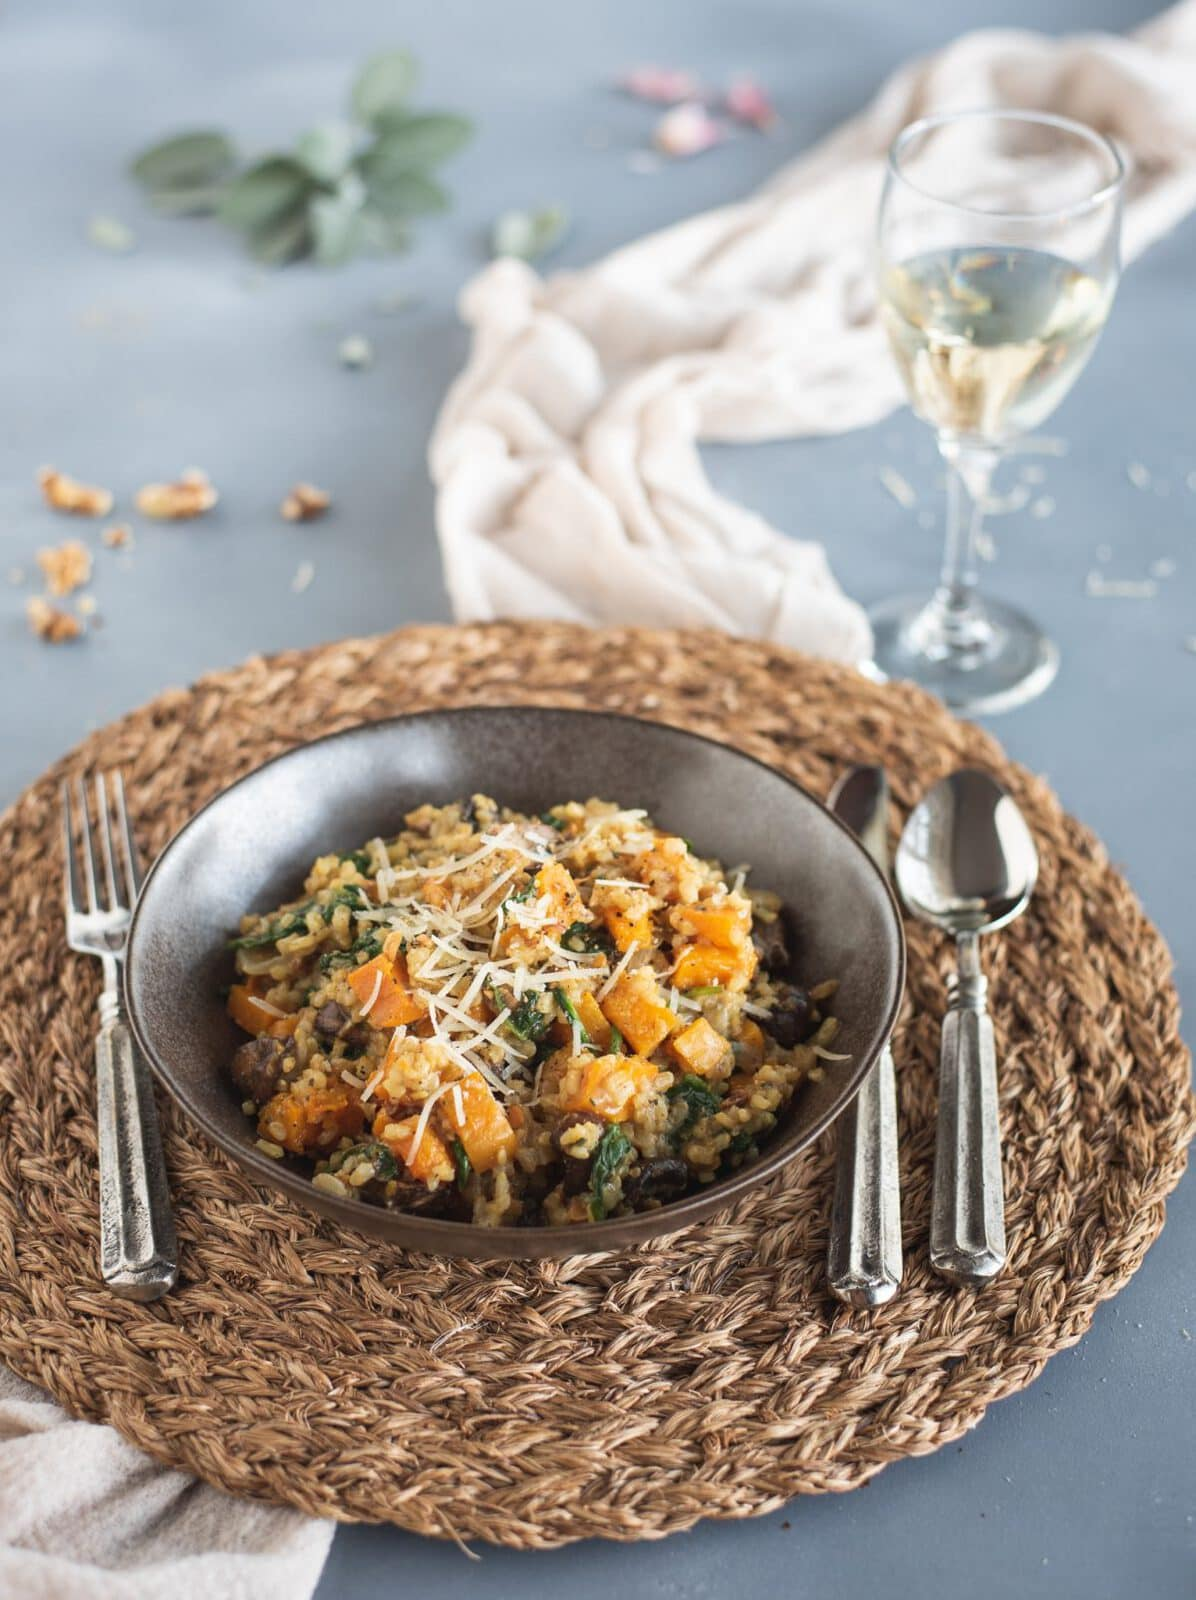 Plate of Brown Rice Risotto with Butternut Squash & Mushrooms with wine